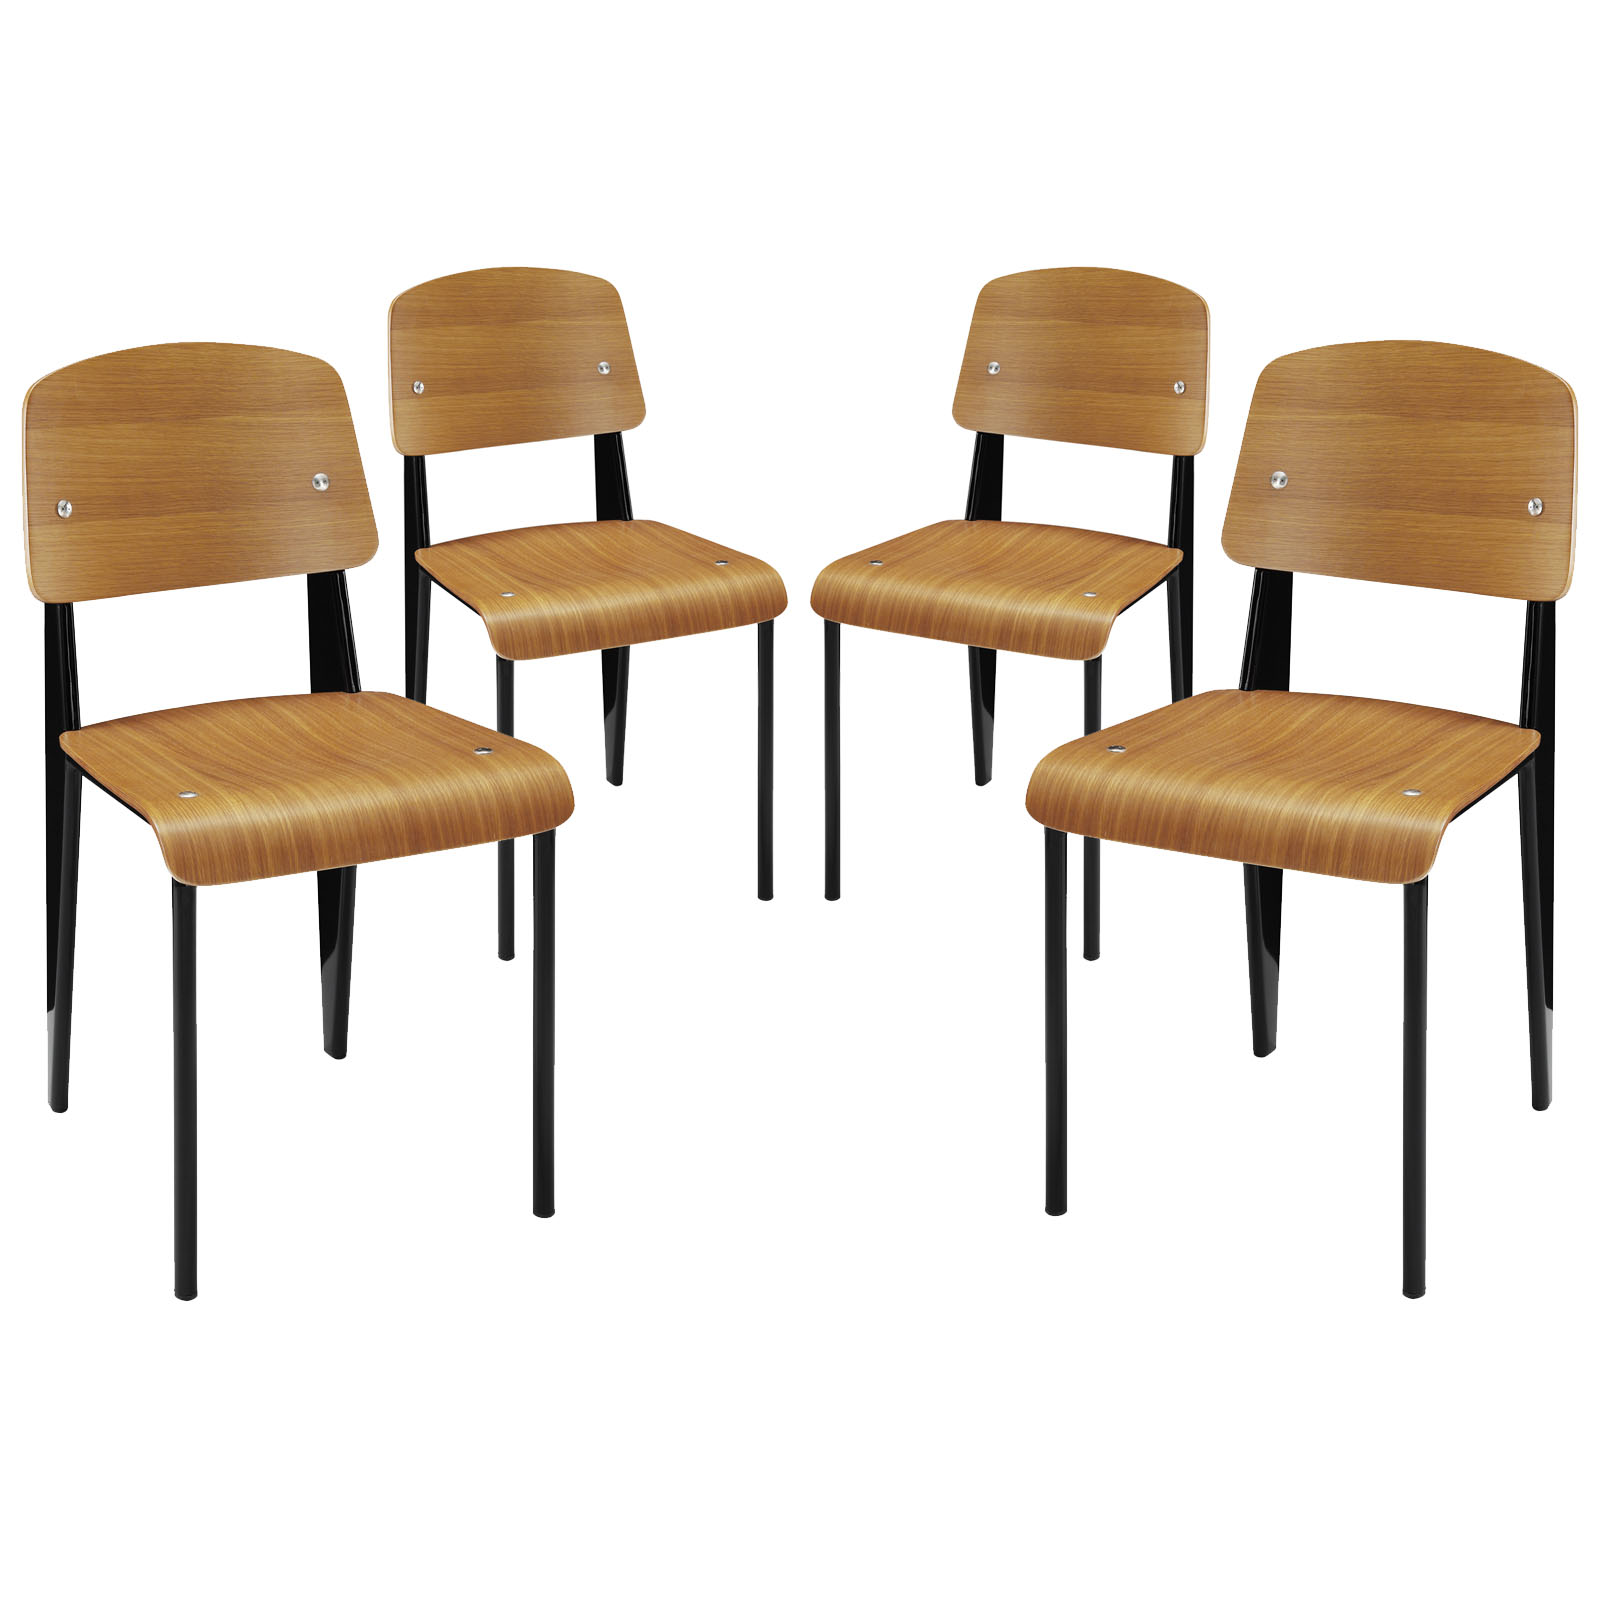 Cabin Dining Side Chair Set of 4 Walnut EEI-1263-WAL